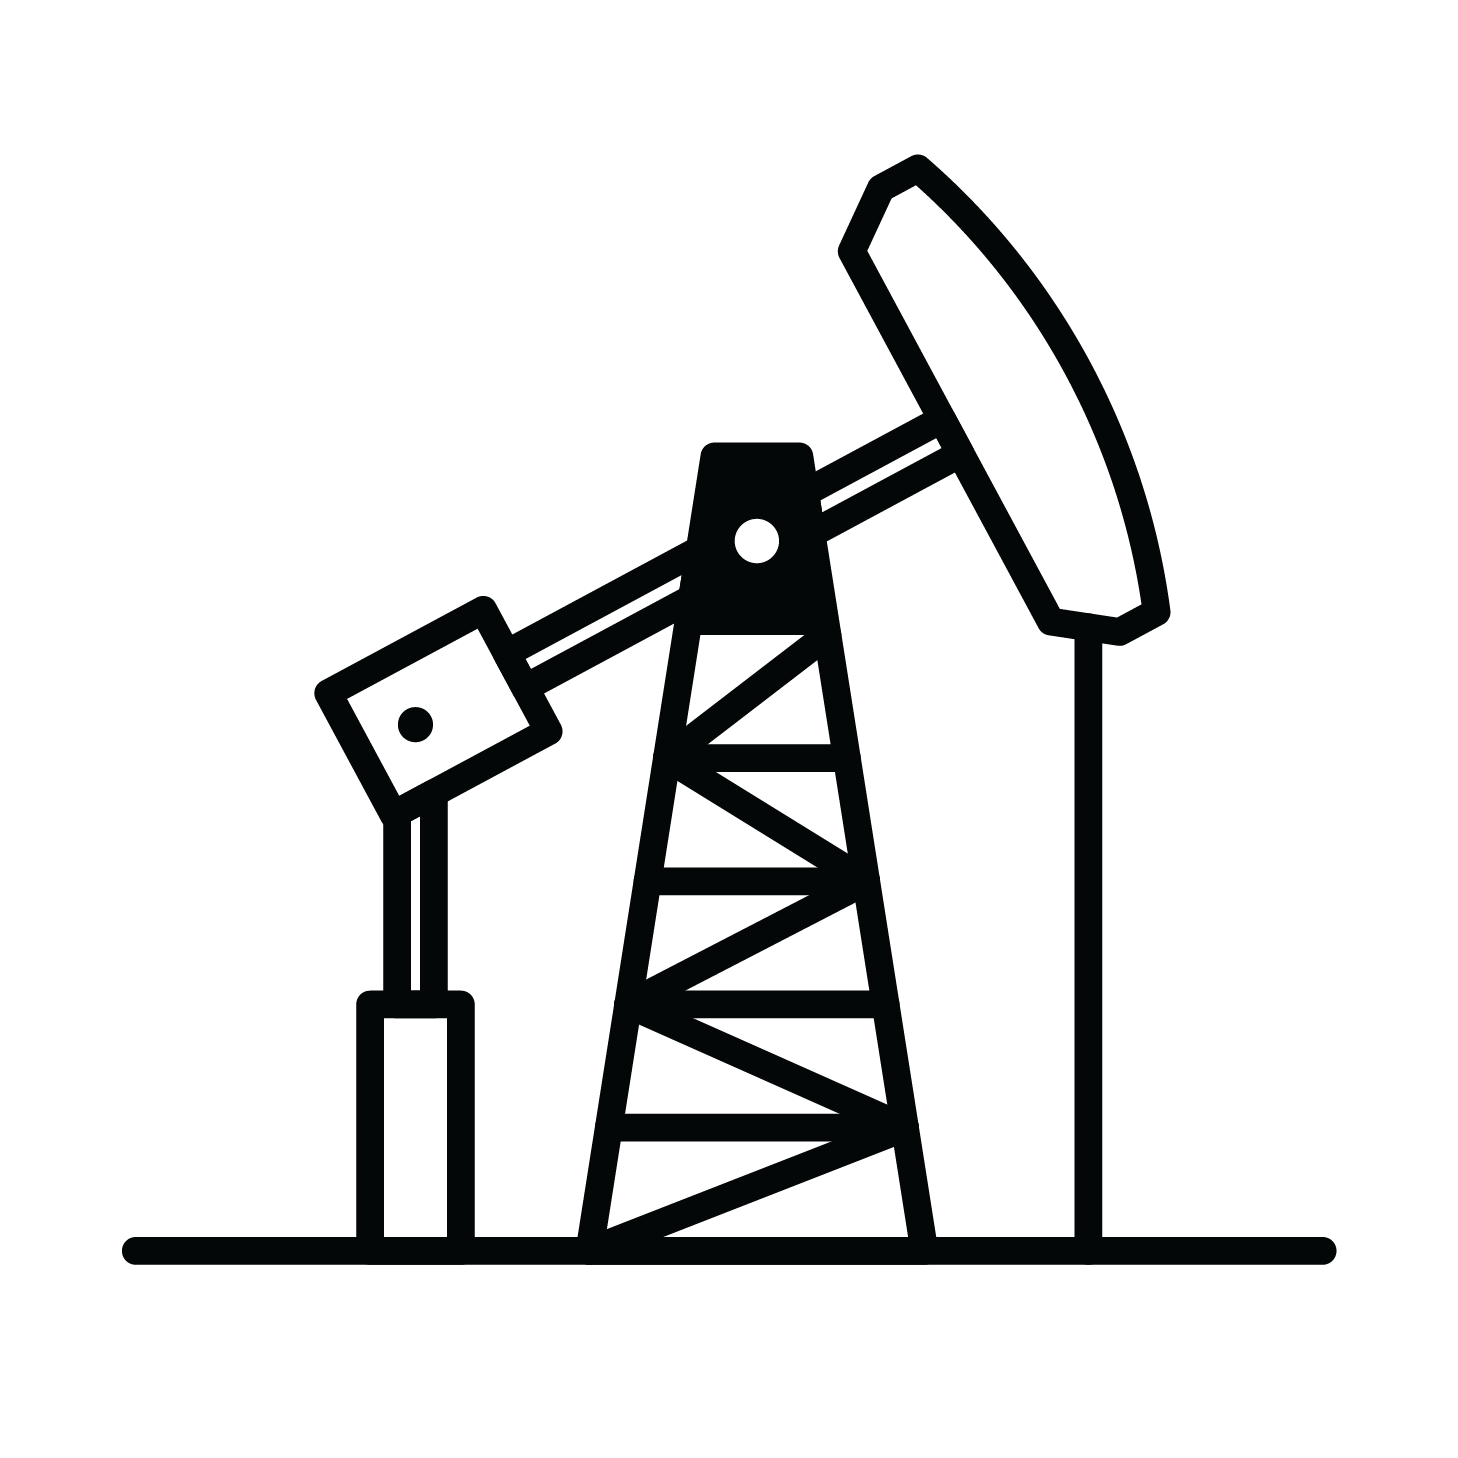 Icon Application - Oil and Gas